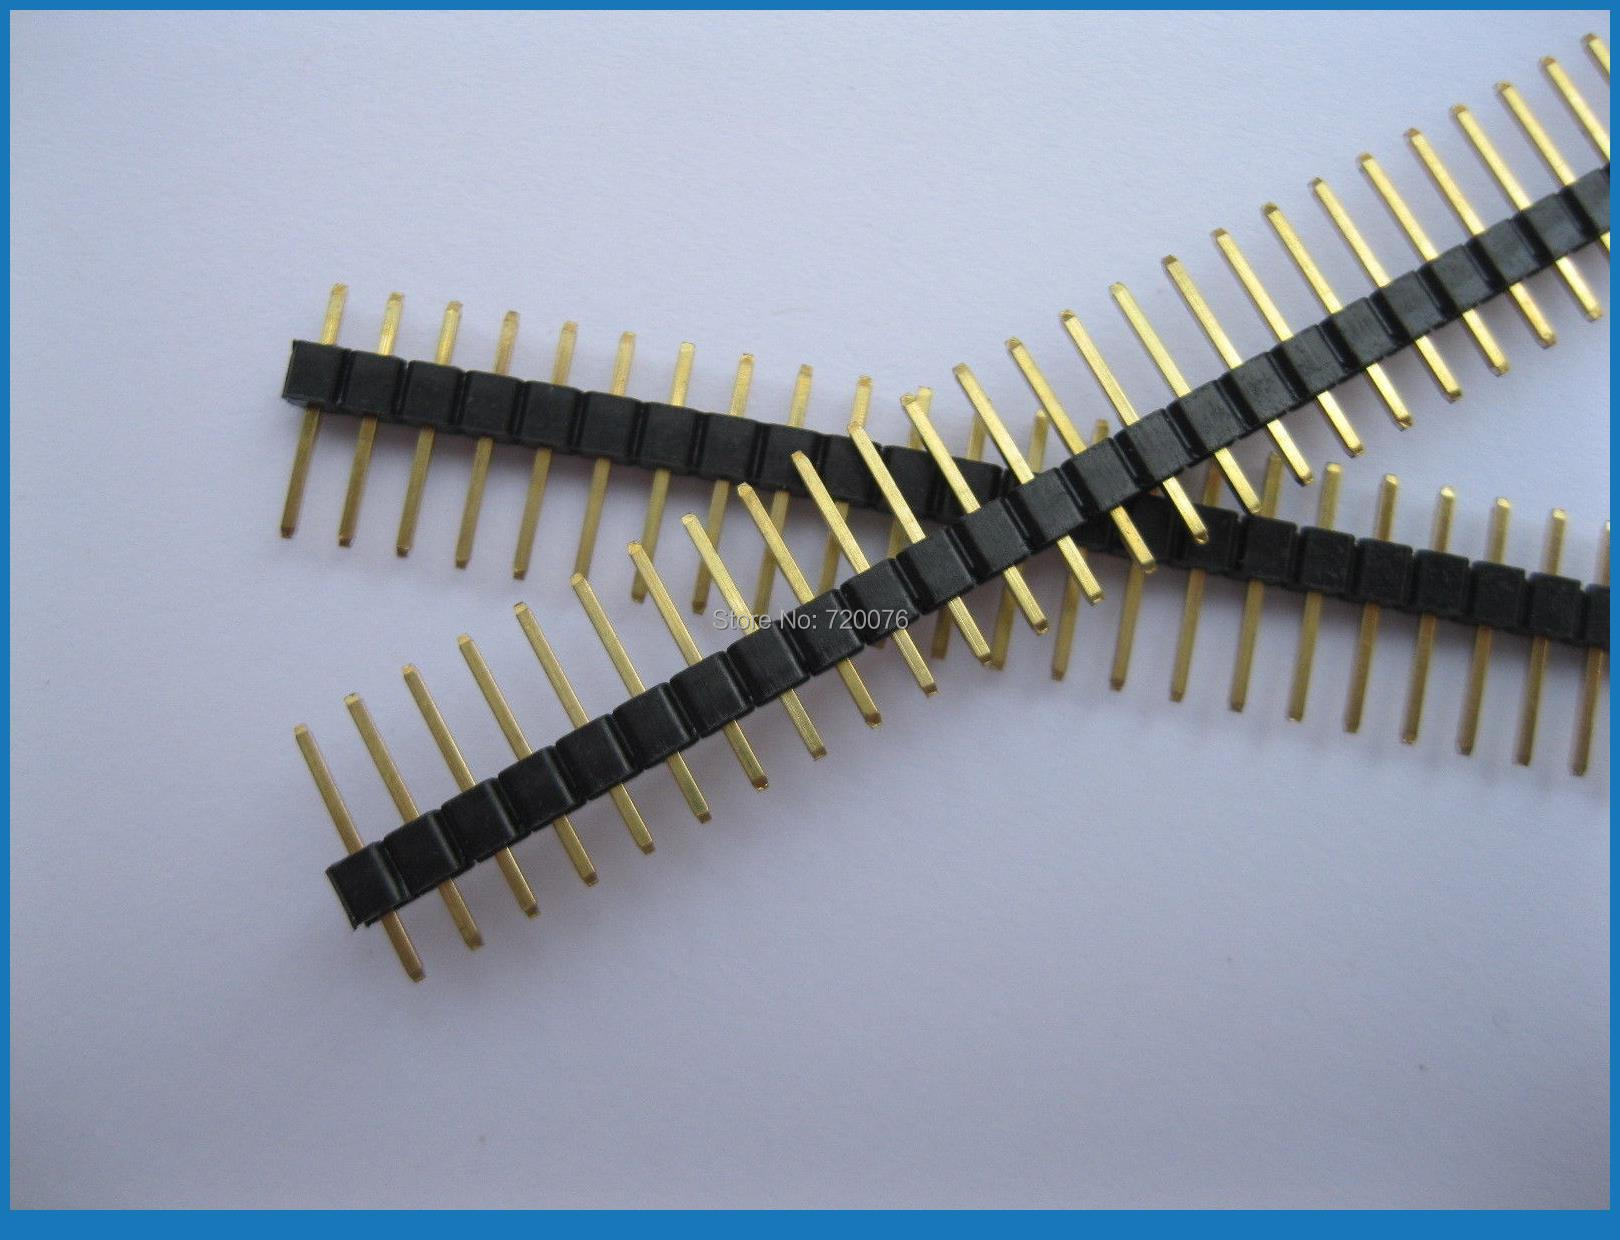 200 pcs 2.54mm Breakable Pin Header 1x40 40pin Male Single Row Strip Gold-Plated<br>